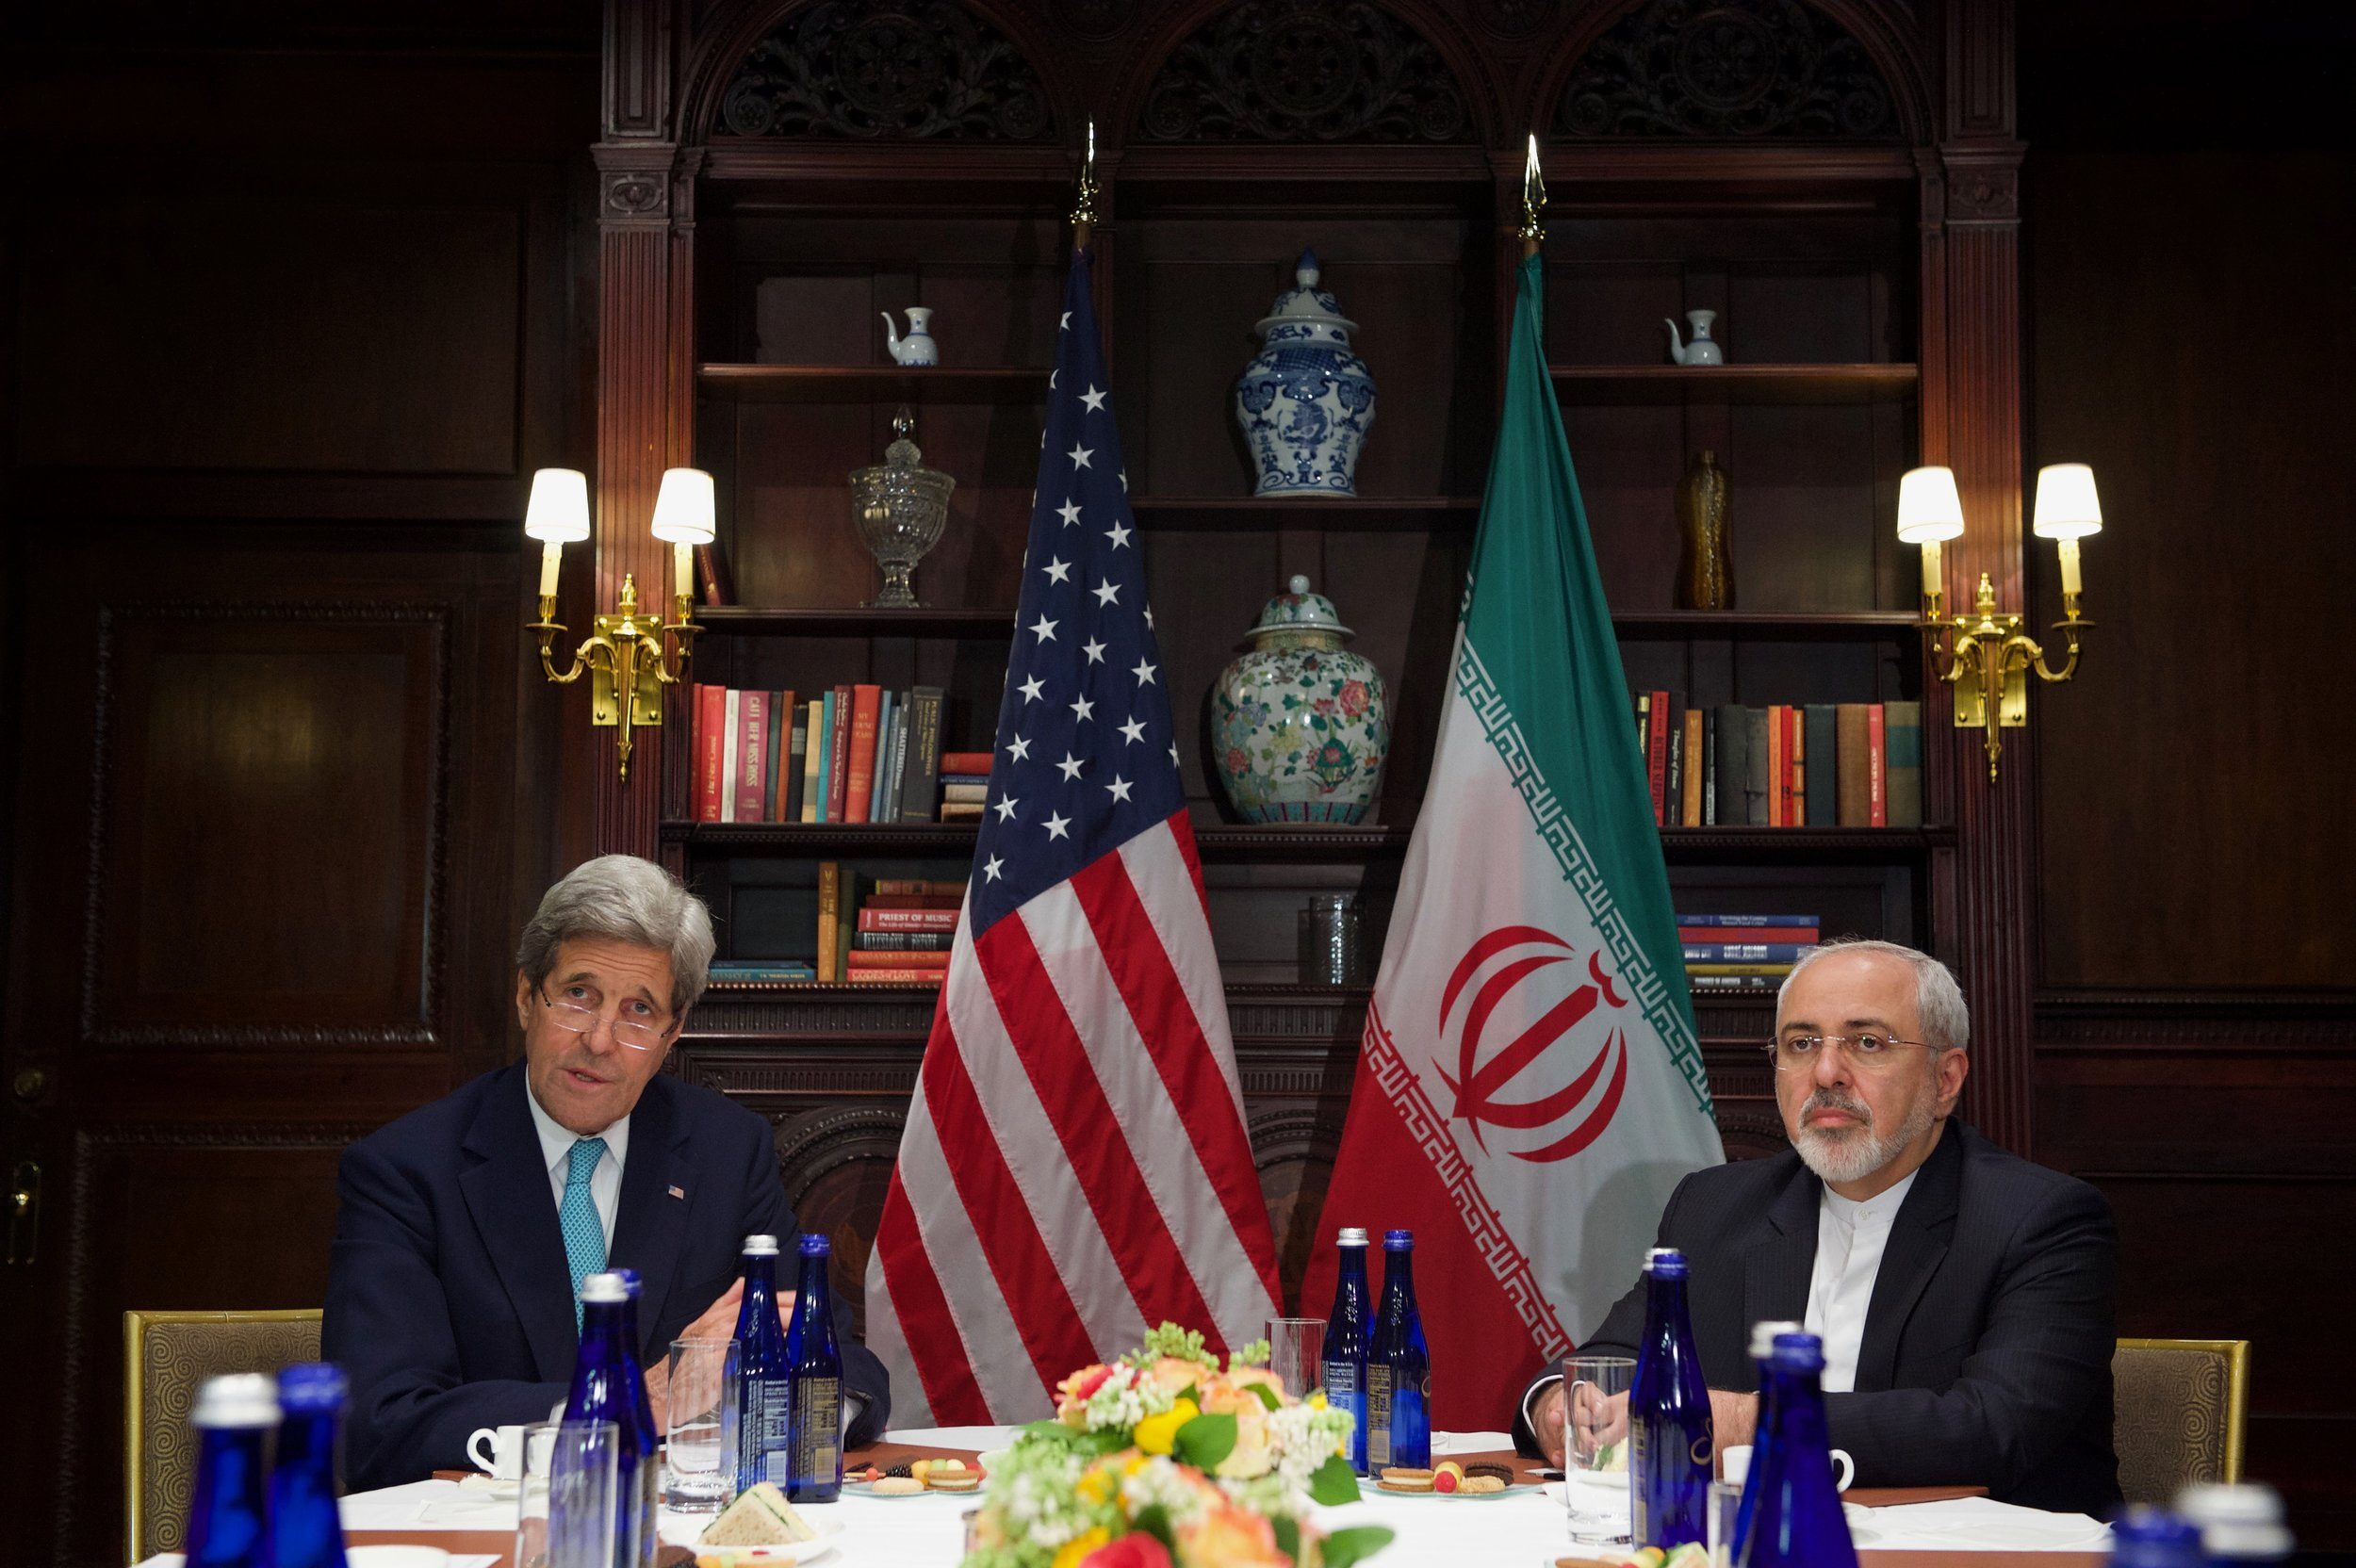 A one-on-one meeting between Secretary Kerry and Iranian Foreign Minister Zarif in New York City.